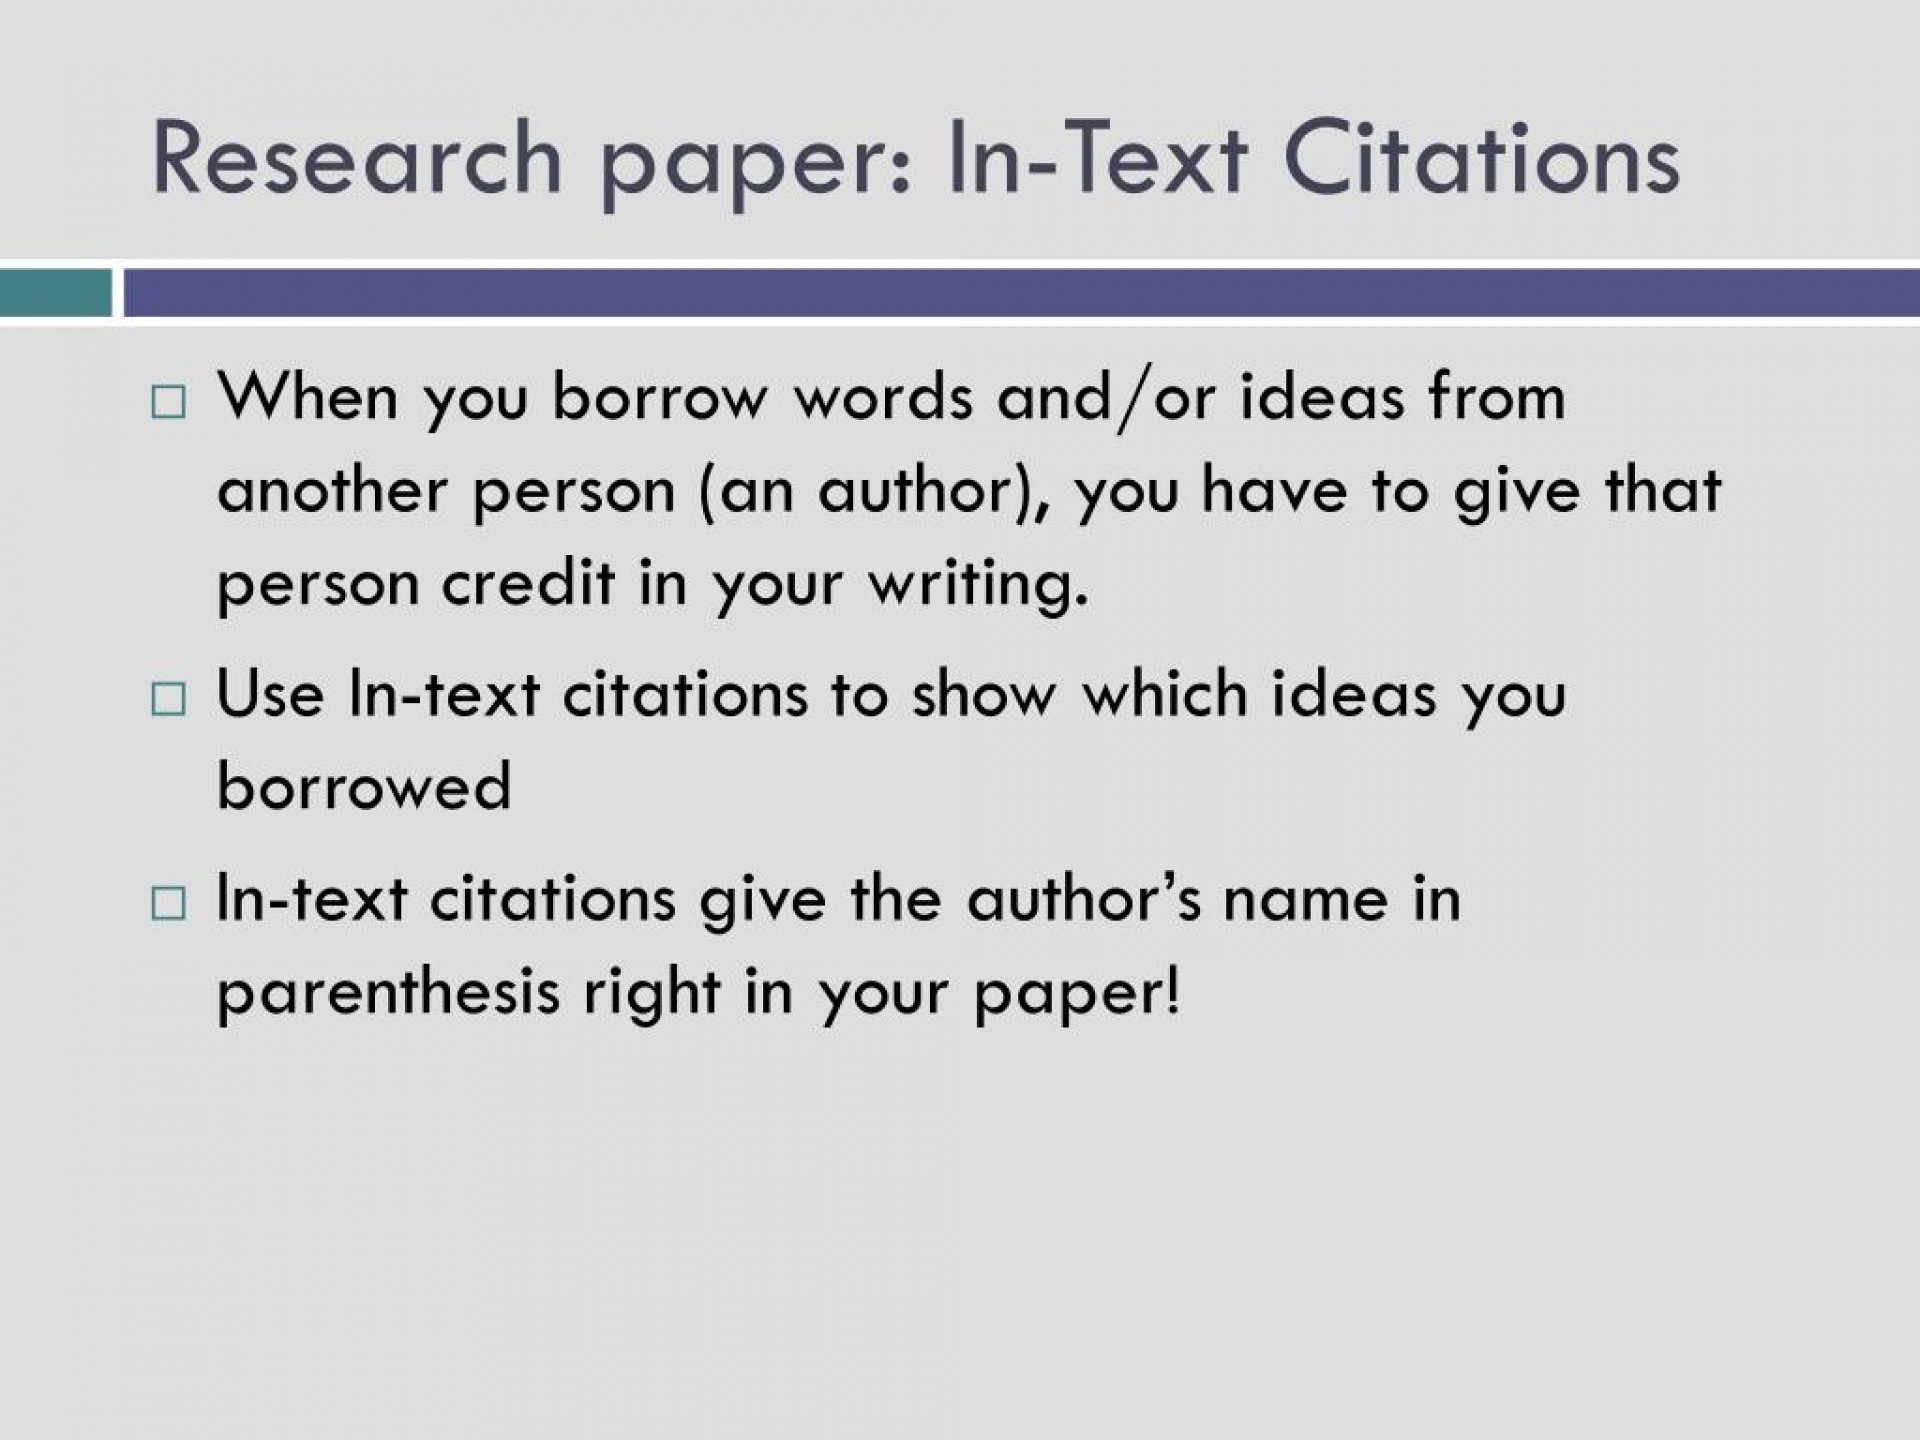 019 Research Paper In Text Citations L How To Prepare Unique Ppt 1920